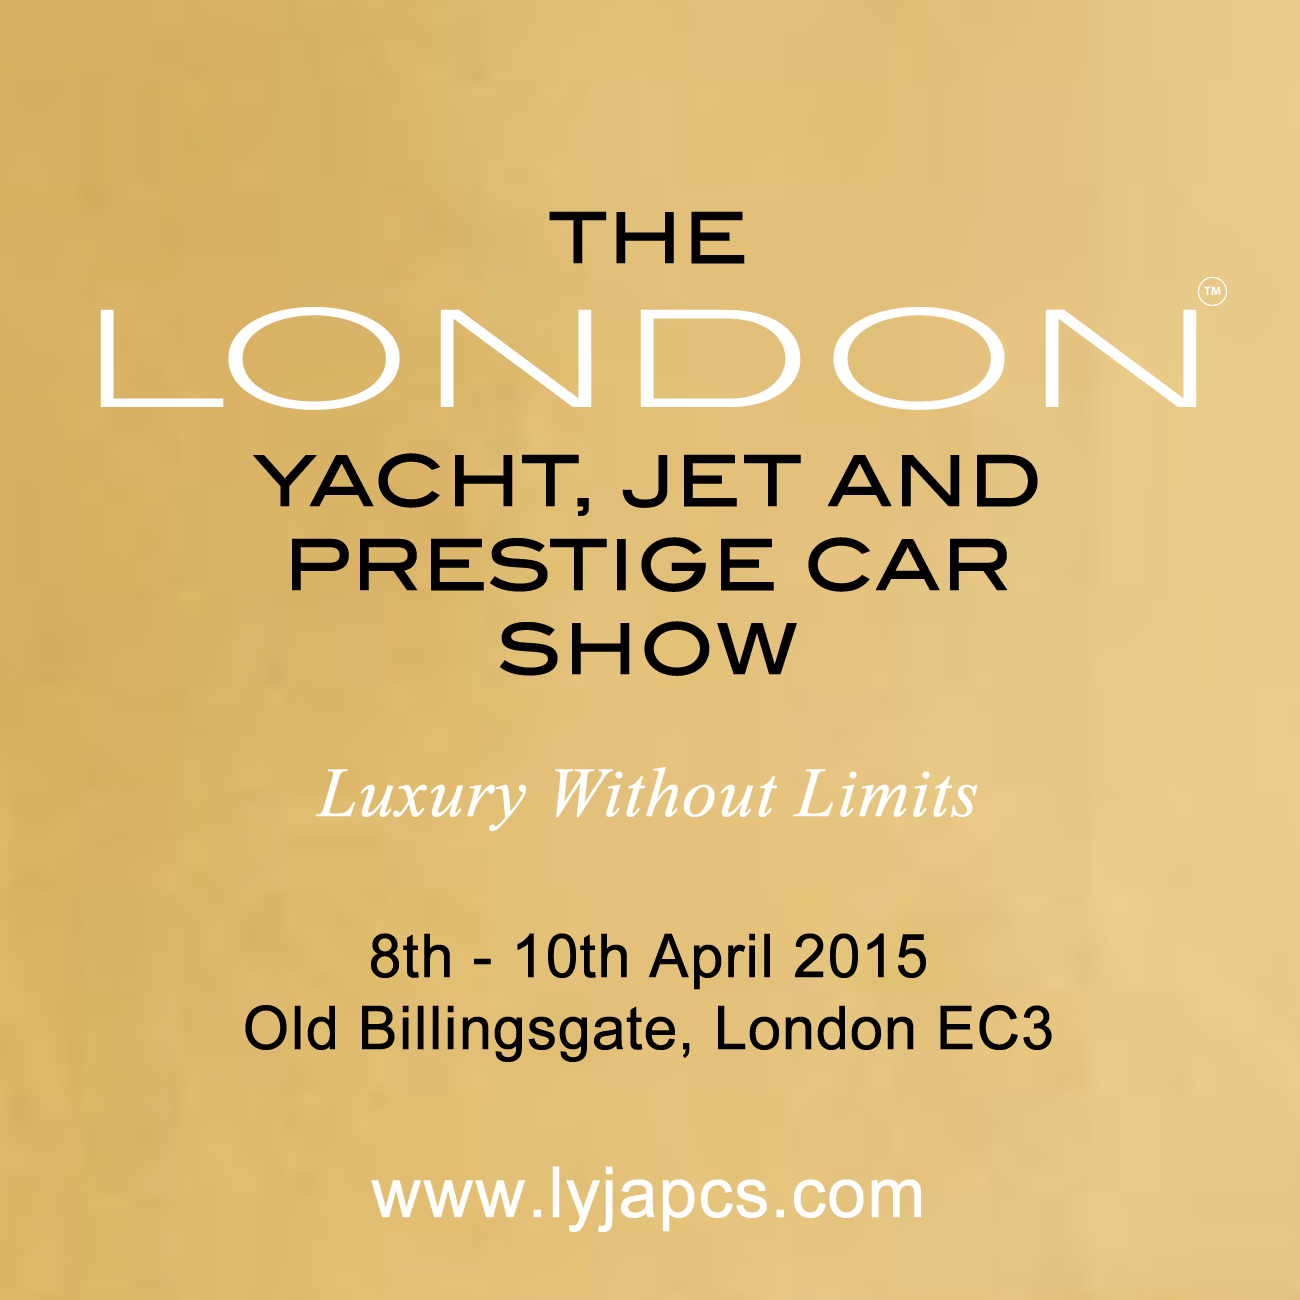 the london yacht, jet and prestige car show, april 8-10, london